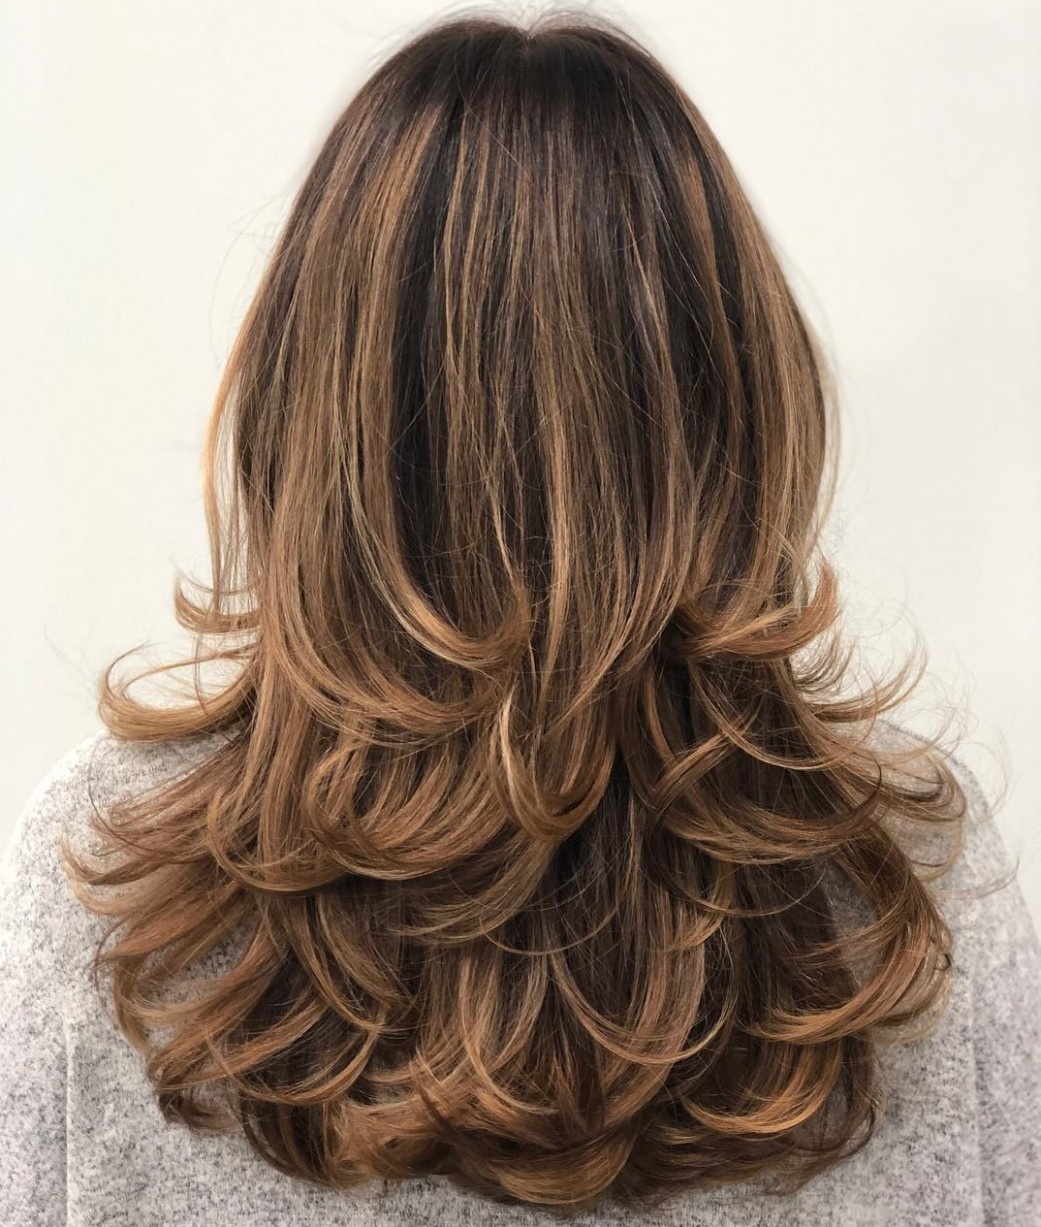 11 NEW Long Hairstyles with Layers for 11 - Hair Adviser